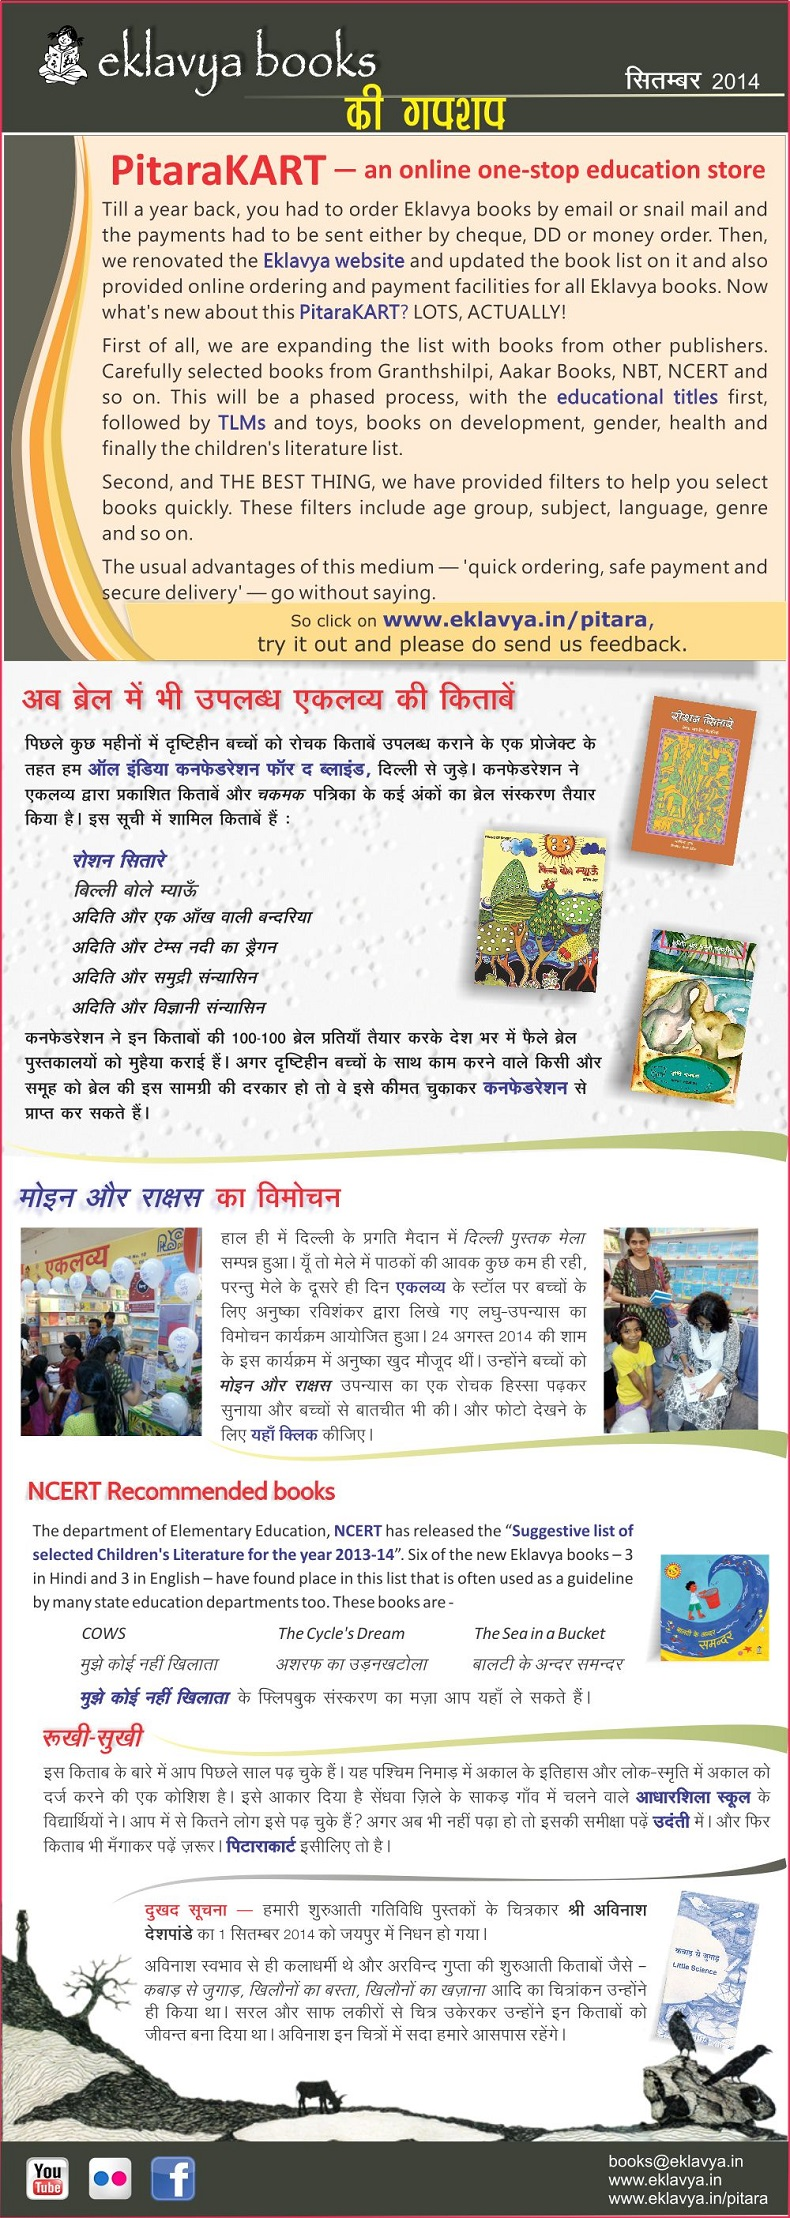 eklavyabooks ki gupshup - September 2014. Enable image for viewing newsletter